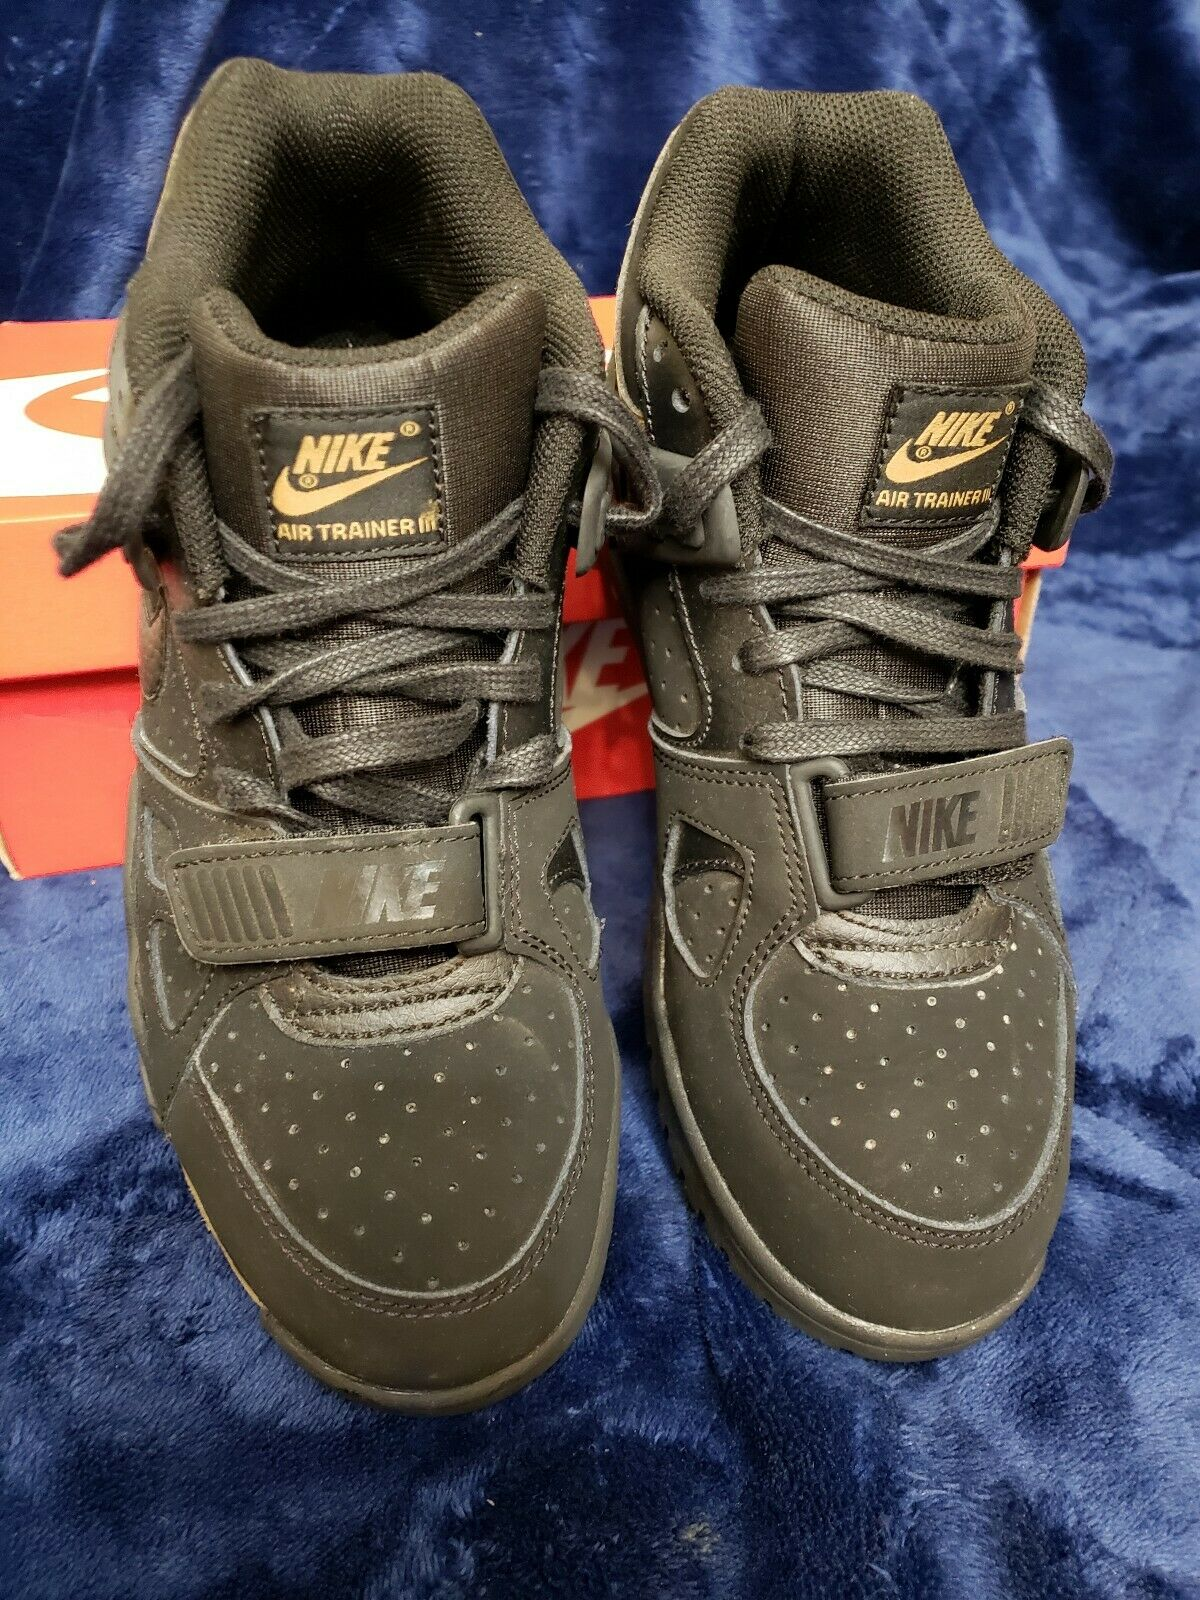 ddaaf25d73750 Nike air trainer 3 Super Super Super Bowl 50 Limited Edition Size 5y 2b6aca